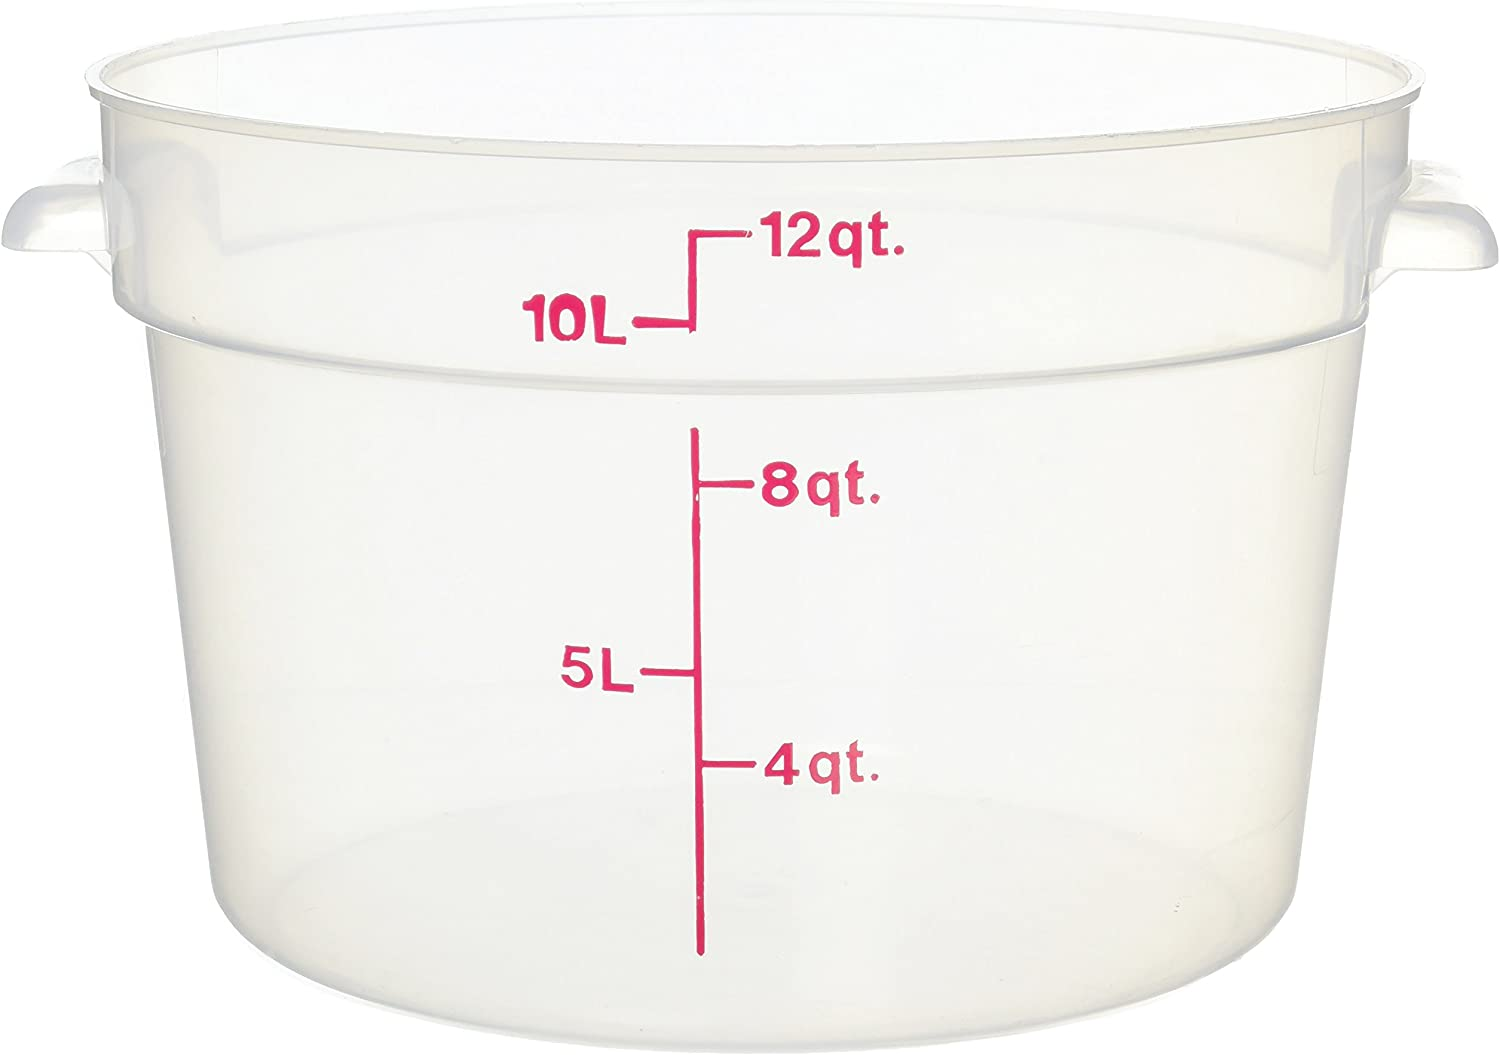 Cambro Camware Translucent Round Food Storage Containers, 12 Quart (RFS12PP) Category: Food Storage Round Containers